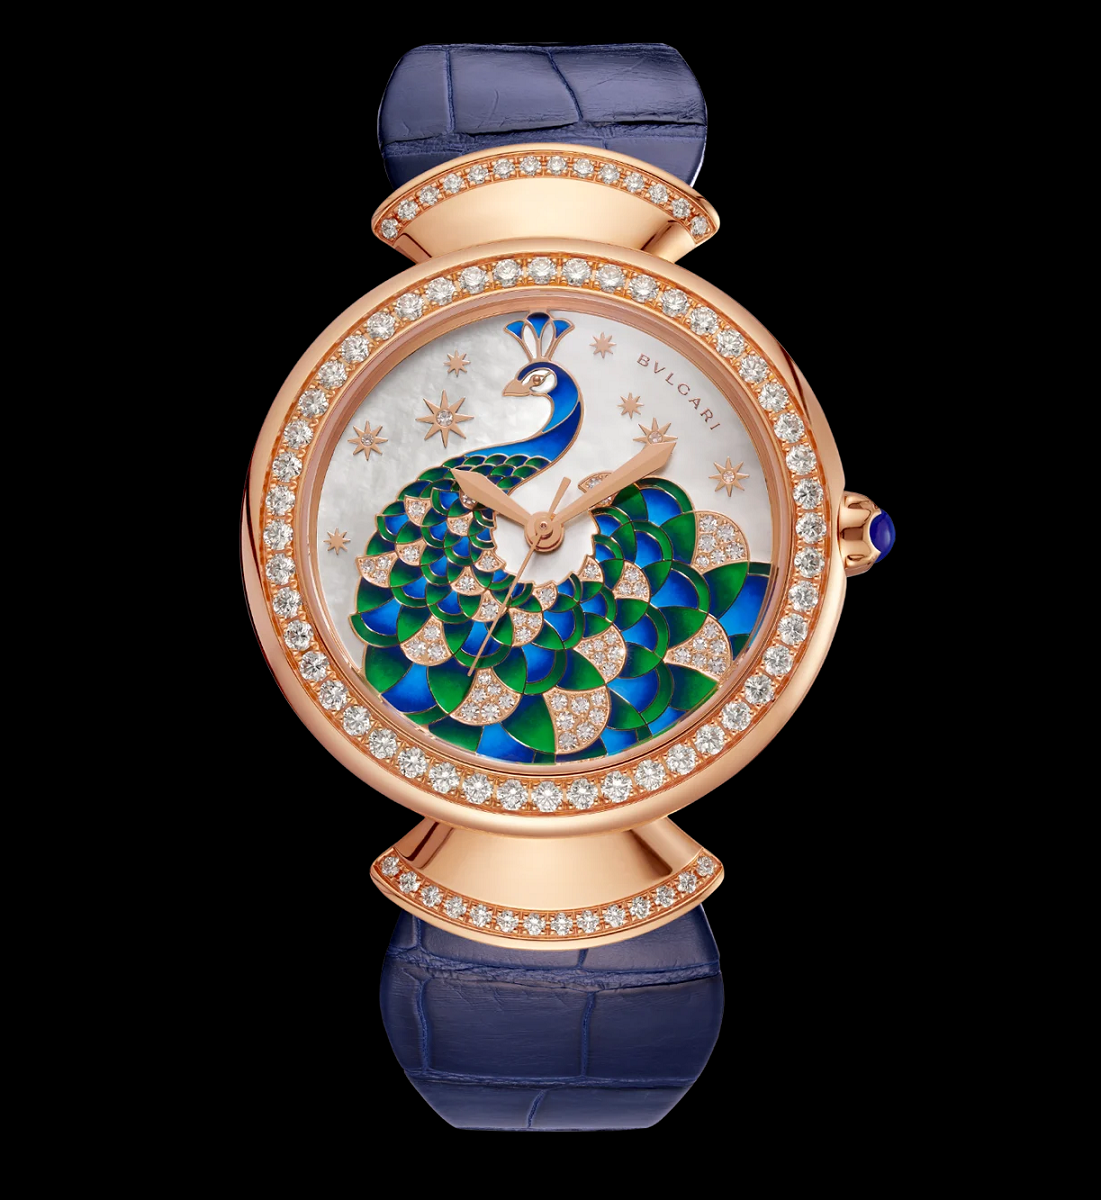 Rose Gold Case Set with Brilliant-Cut Diamonds, Mother-Of-Pearl Dial with Hand-Painted Peacock